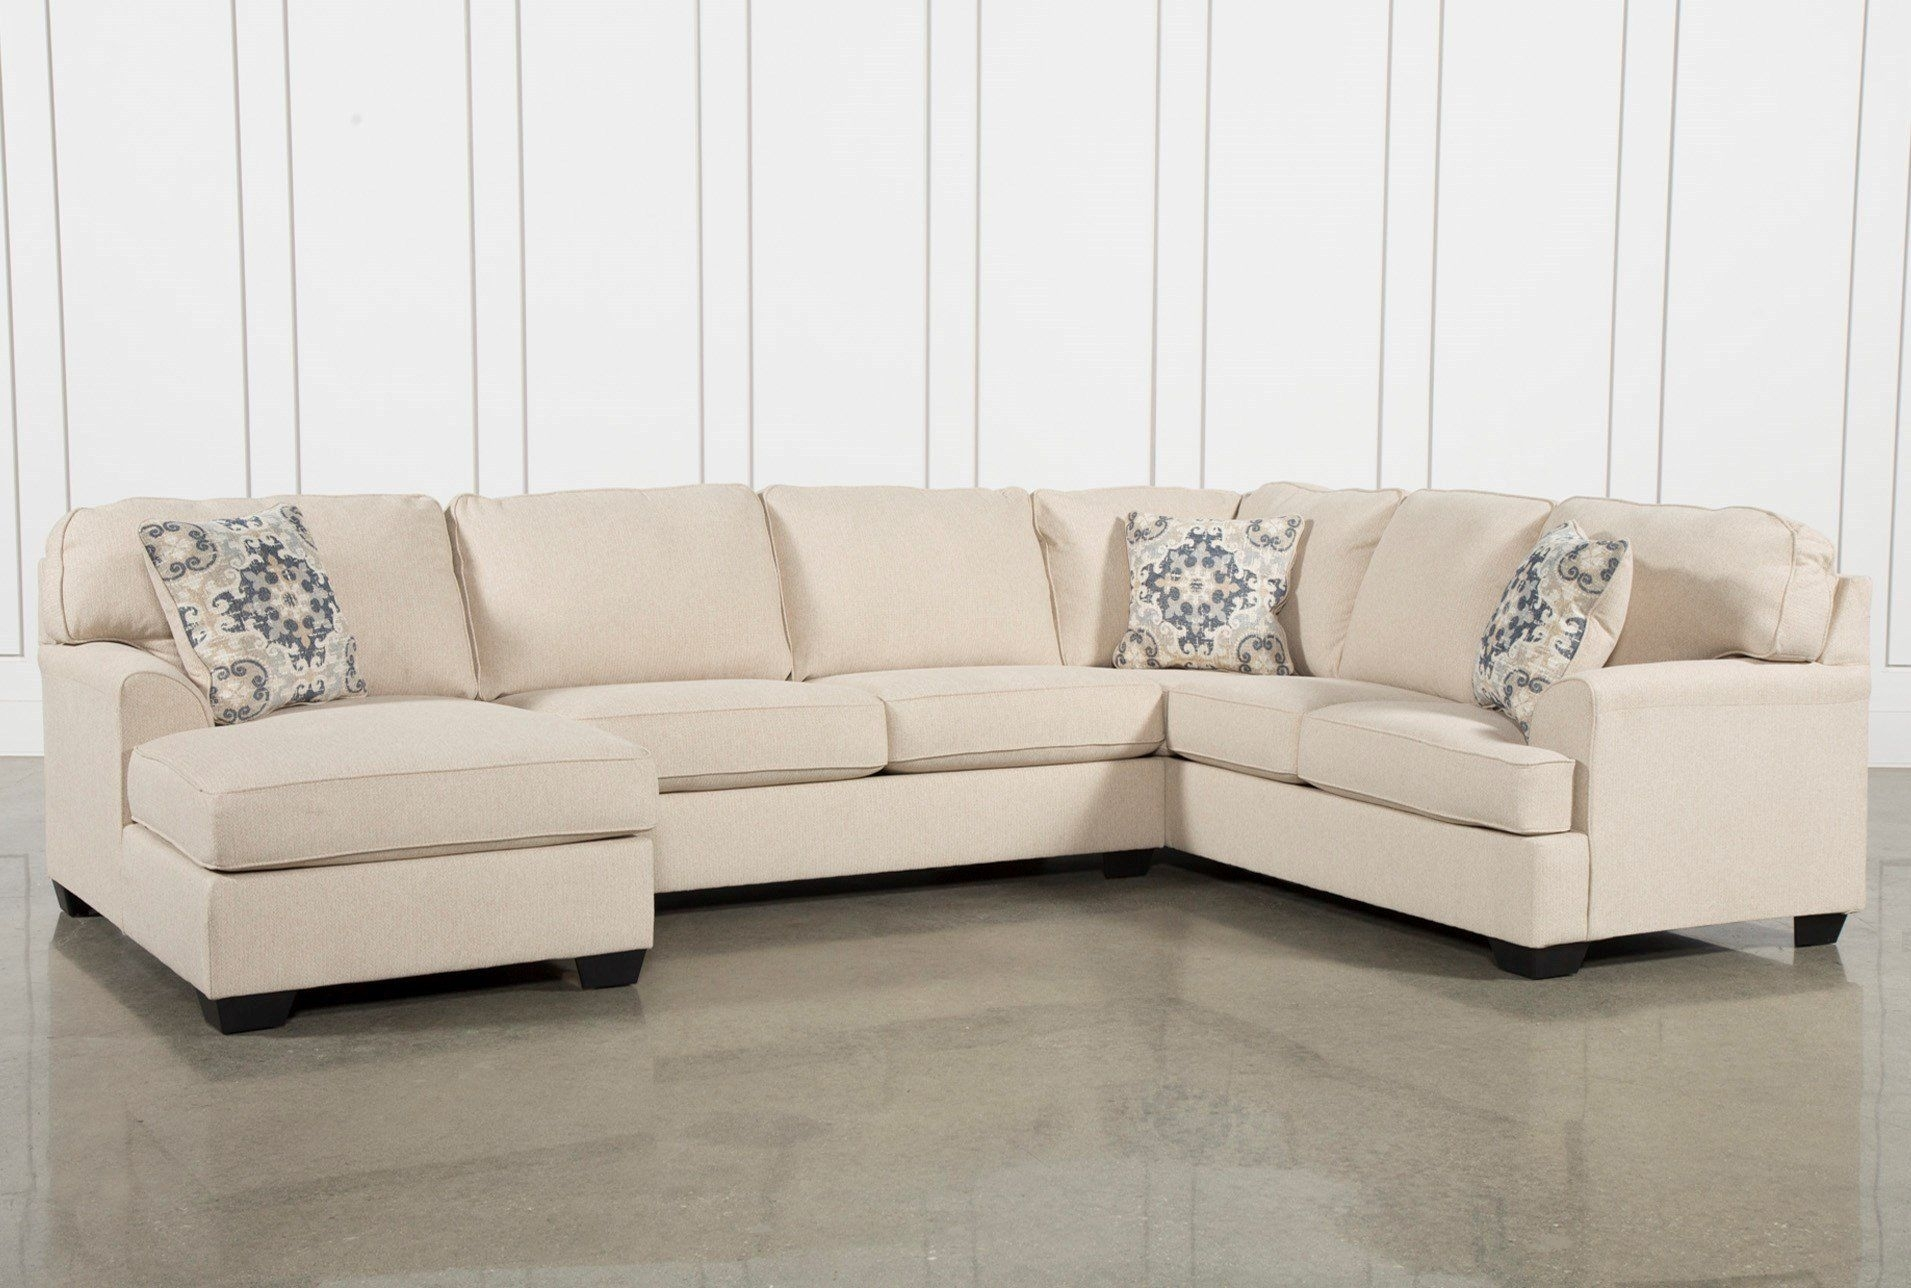 Malbry Point 3 Piece Sectional W/laf Chaise   Tempe Condo For Blaine 4 Piece Sectionals (Image 12 of 25)